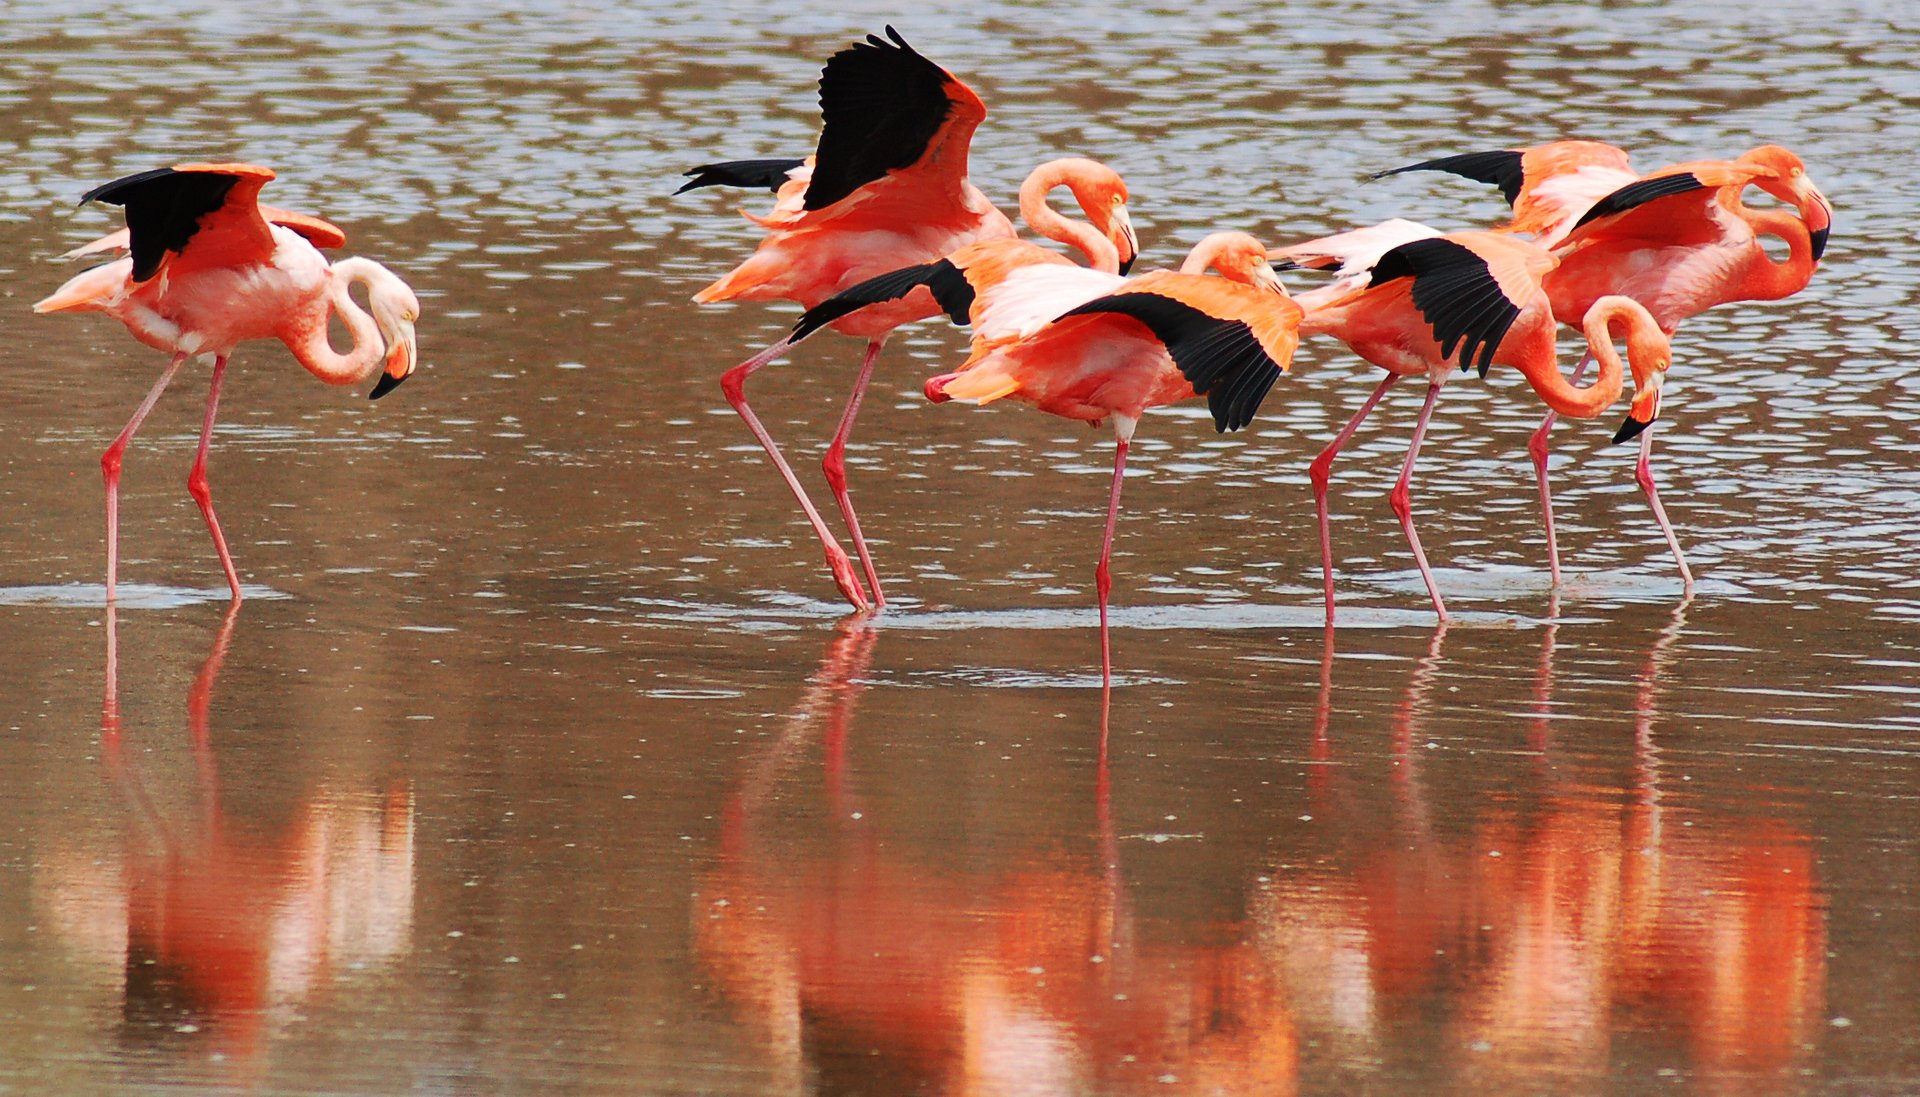 Galapagos Flamingos Courtship Dances in Galapagos Islands 2020 - Best Time